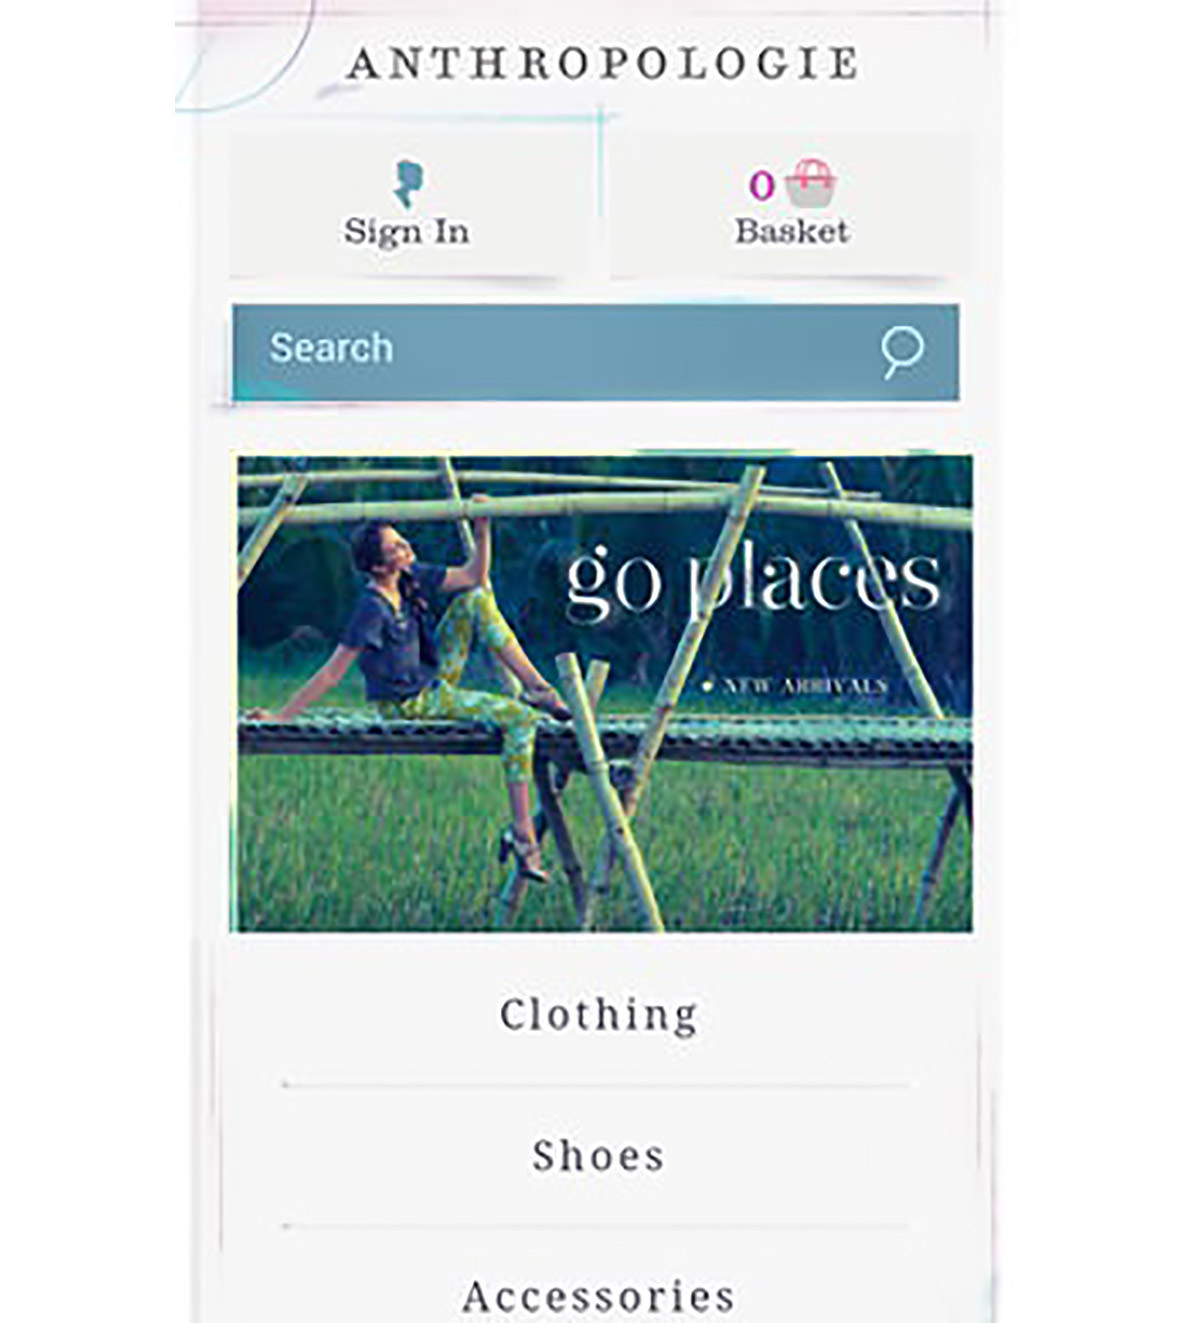 anthropologie mobile image